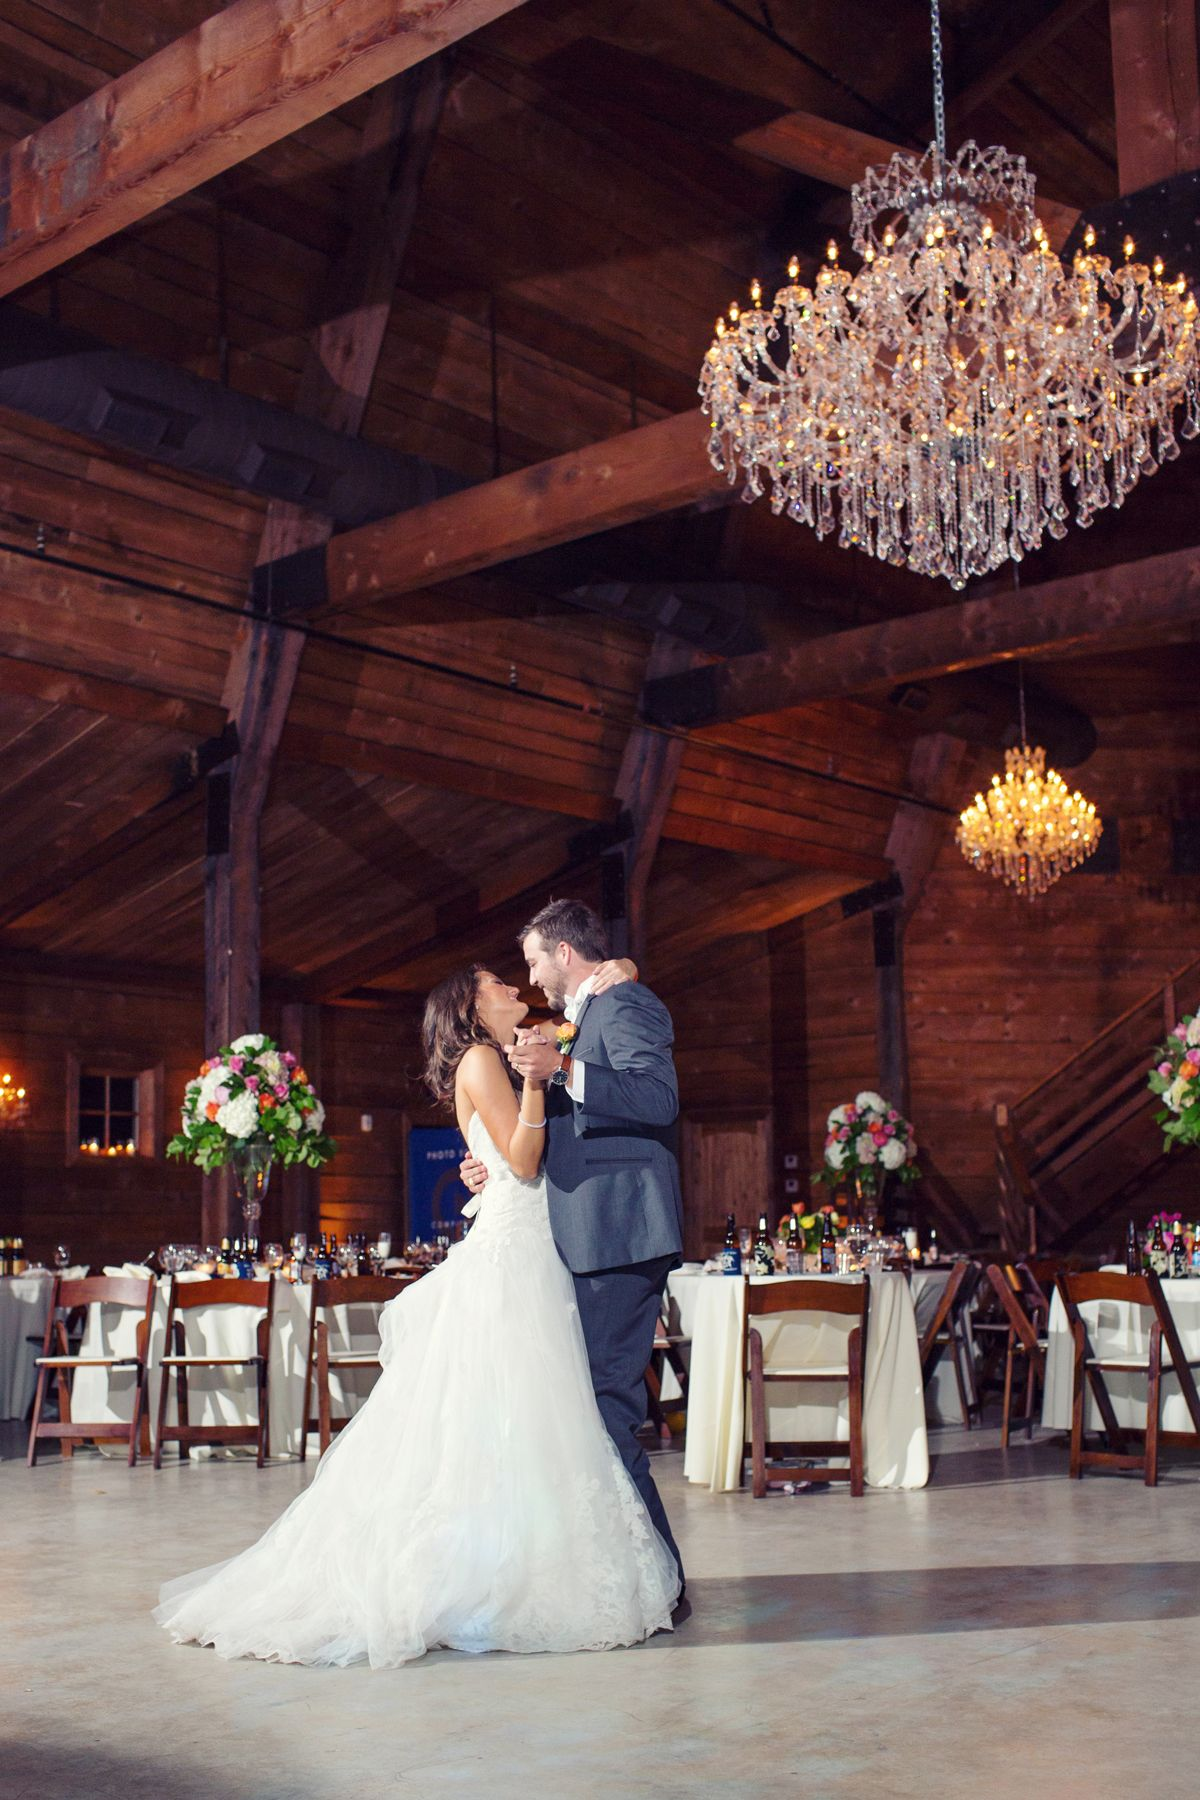 wedding venues barn rustic weddings venue dallas dfw reception milestone event party country barns events chic nj